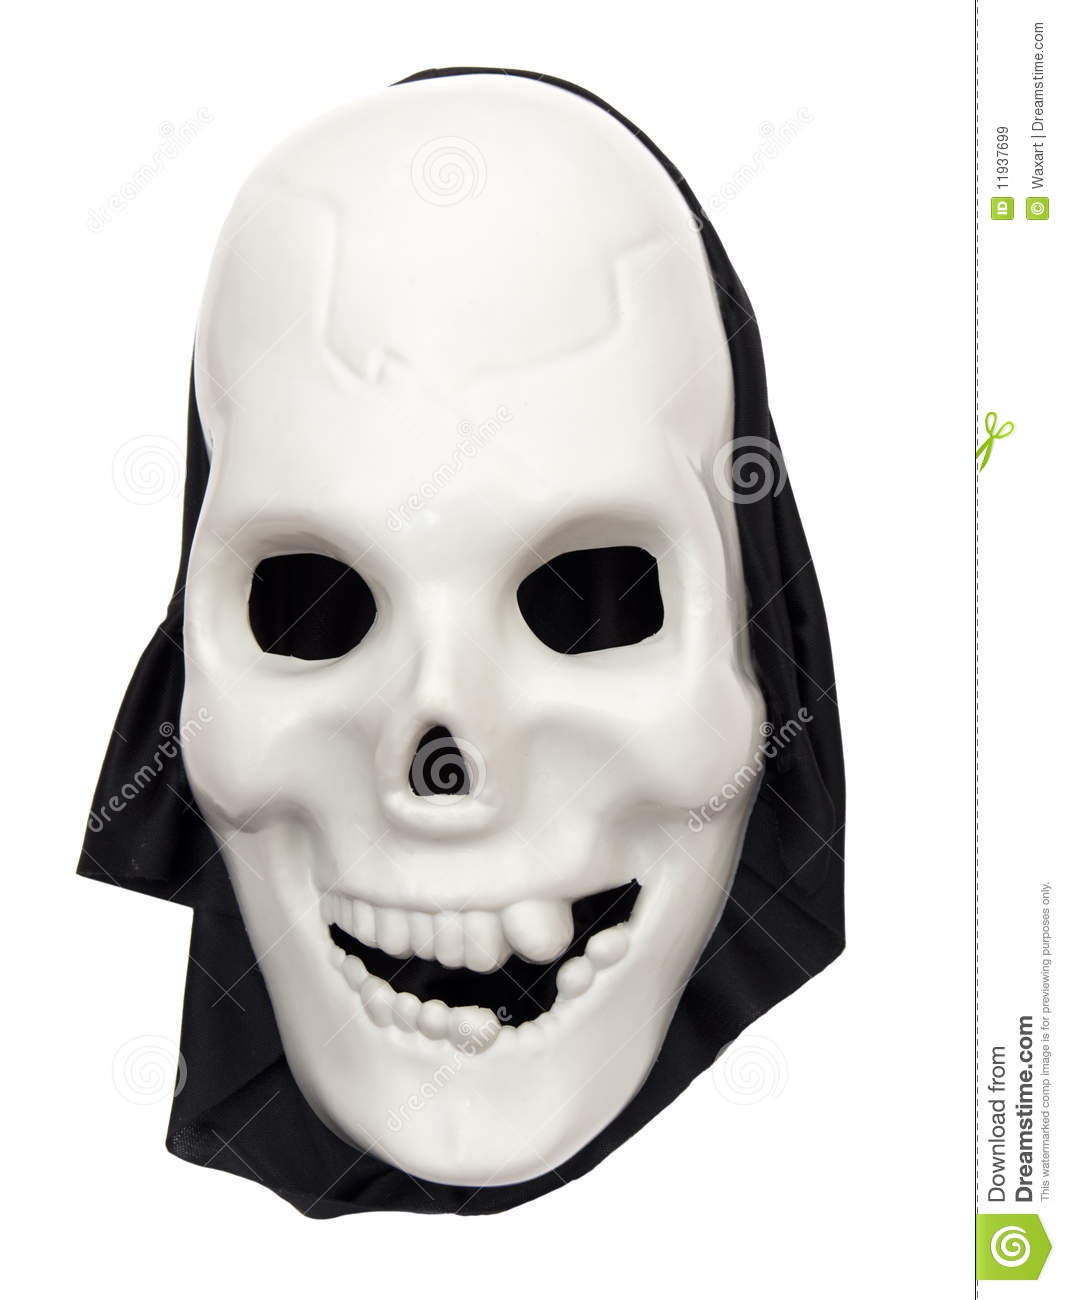 spooky halloween skull mask on white stock image - image of mask